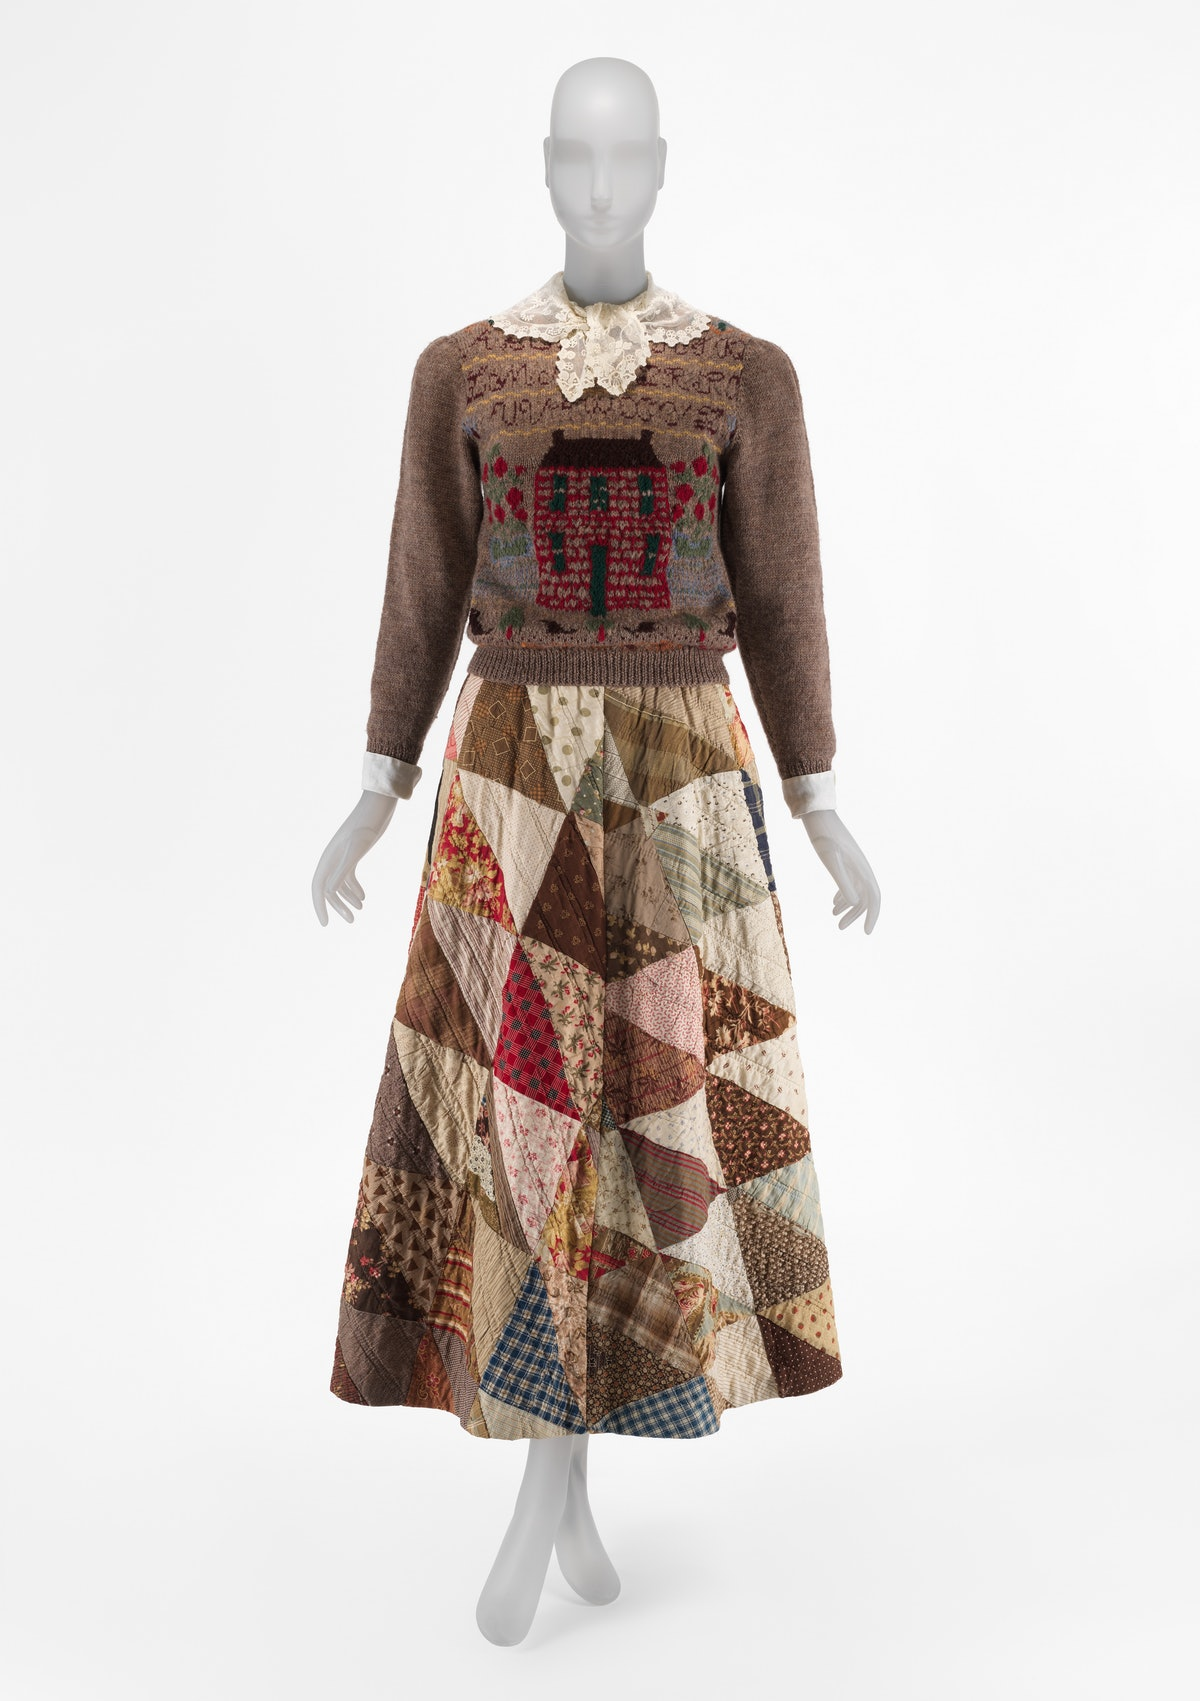 a mannequin wearing a quilted skirt and knit sweater by Ralph Lauren